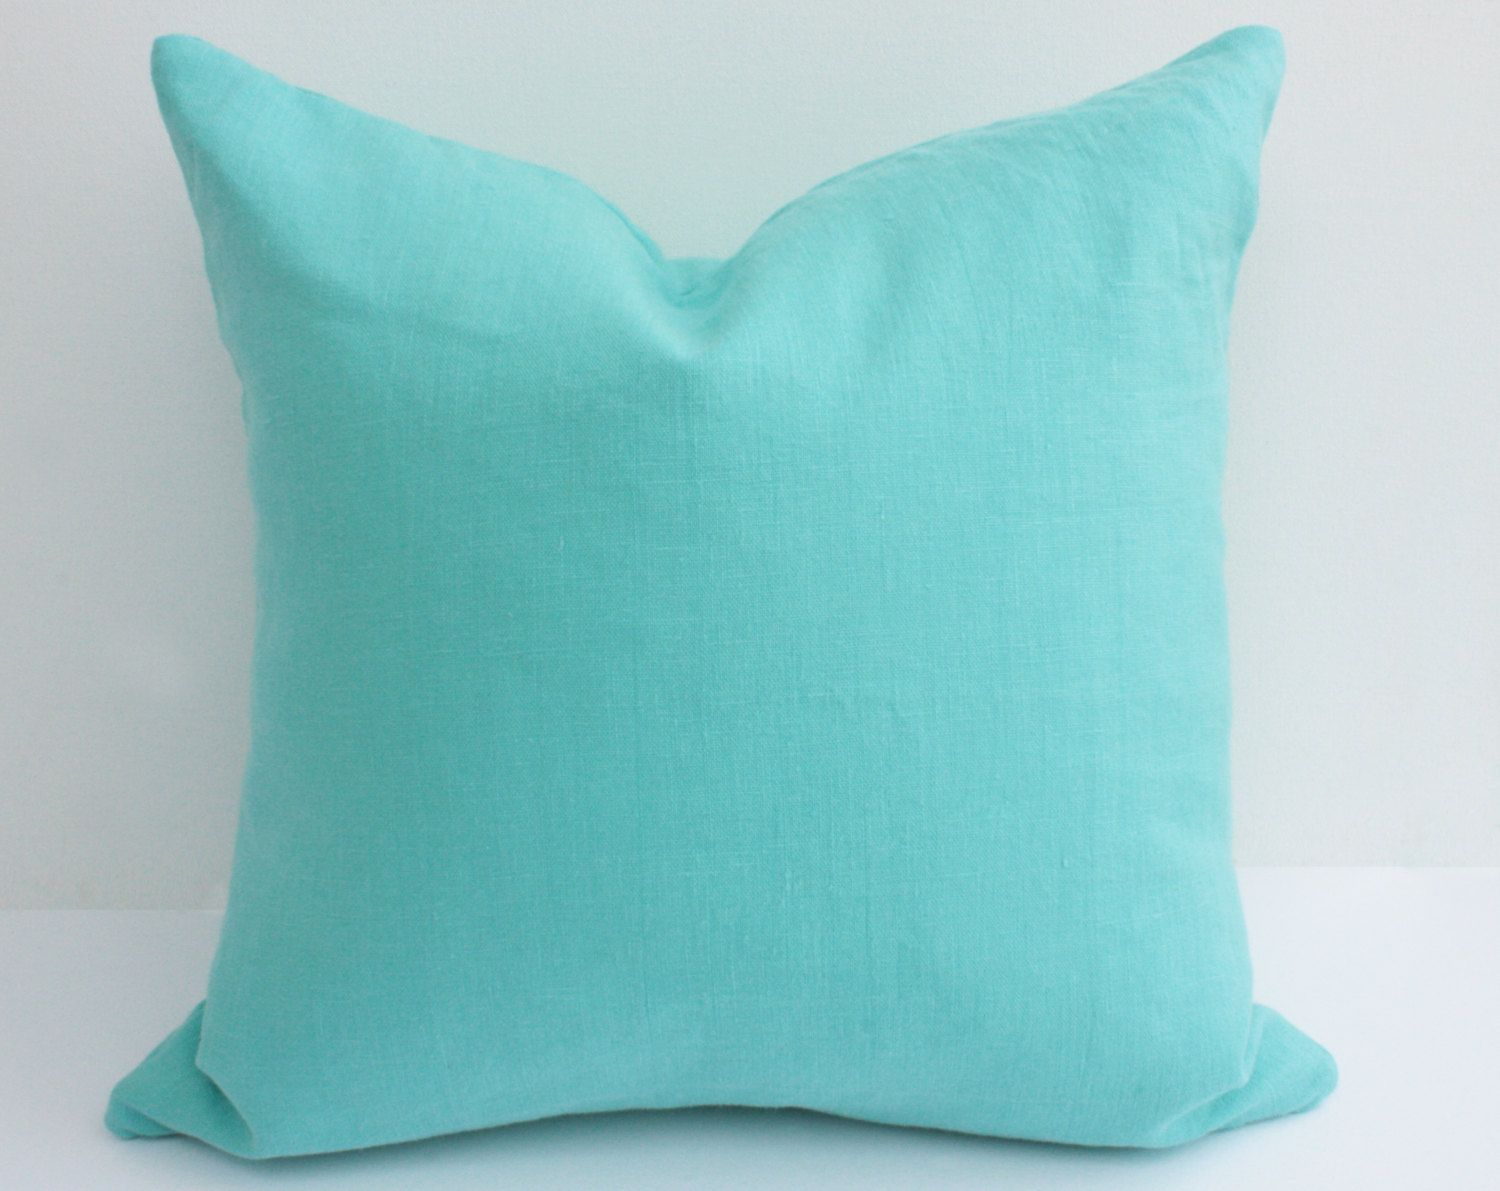 CUSTOM ORDER Linen Pillow Cover, Solid Color Pillow Cover, Solid Linen Pillow Cover with Zipper, 24 x 24 Pillow Cover, Custom Pillow Cover. $34.00, via Etsy.